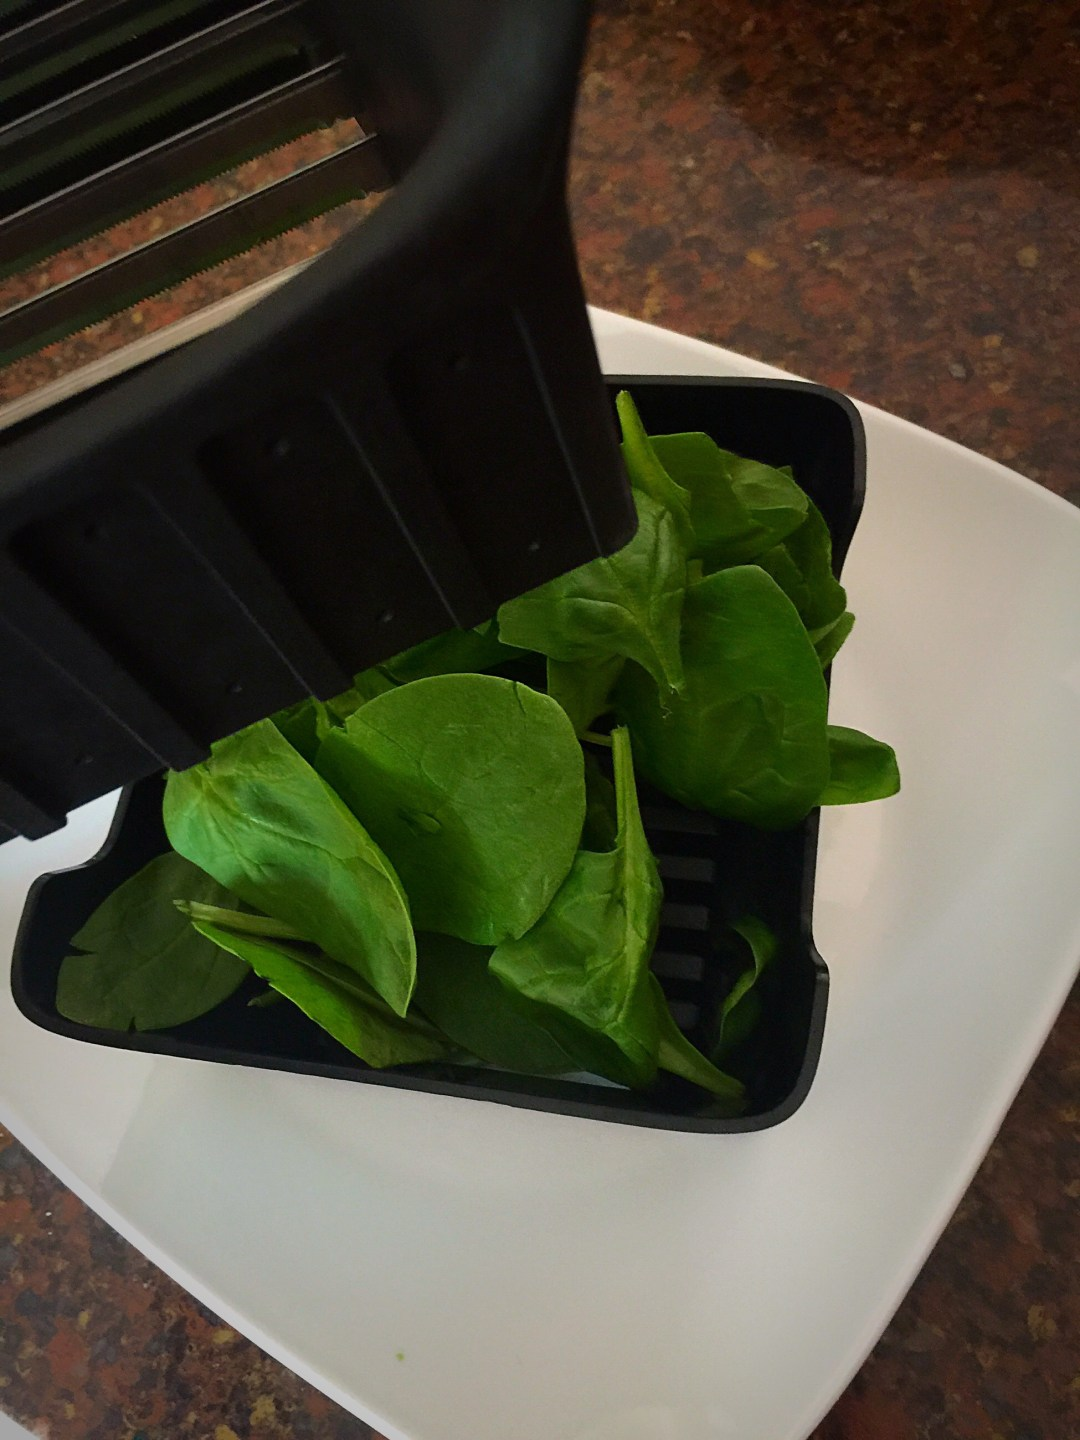 spinach pampered chef salad